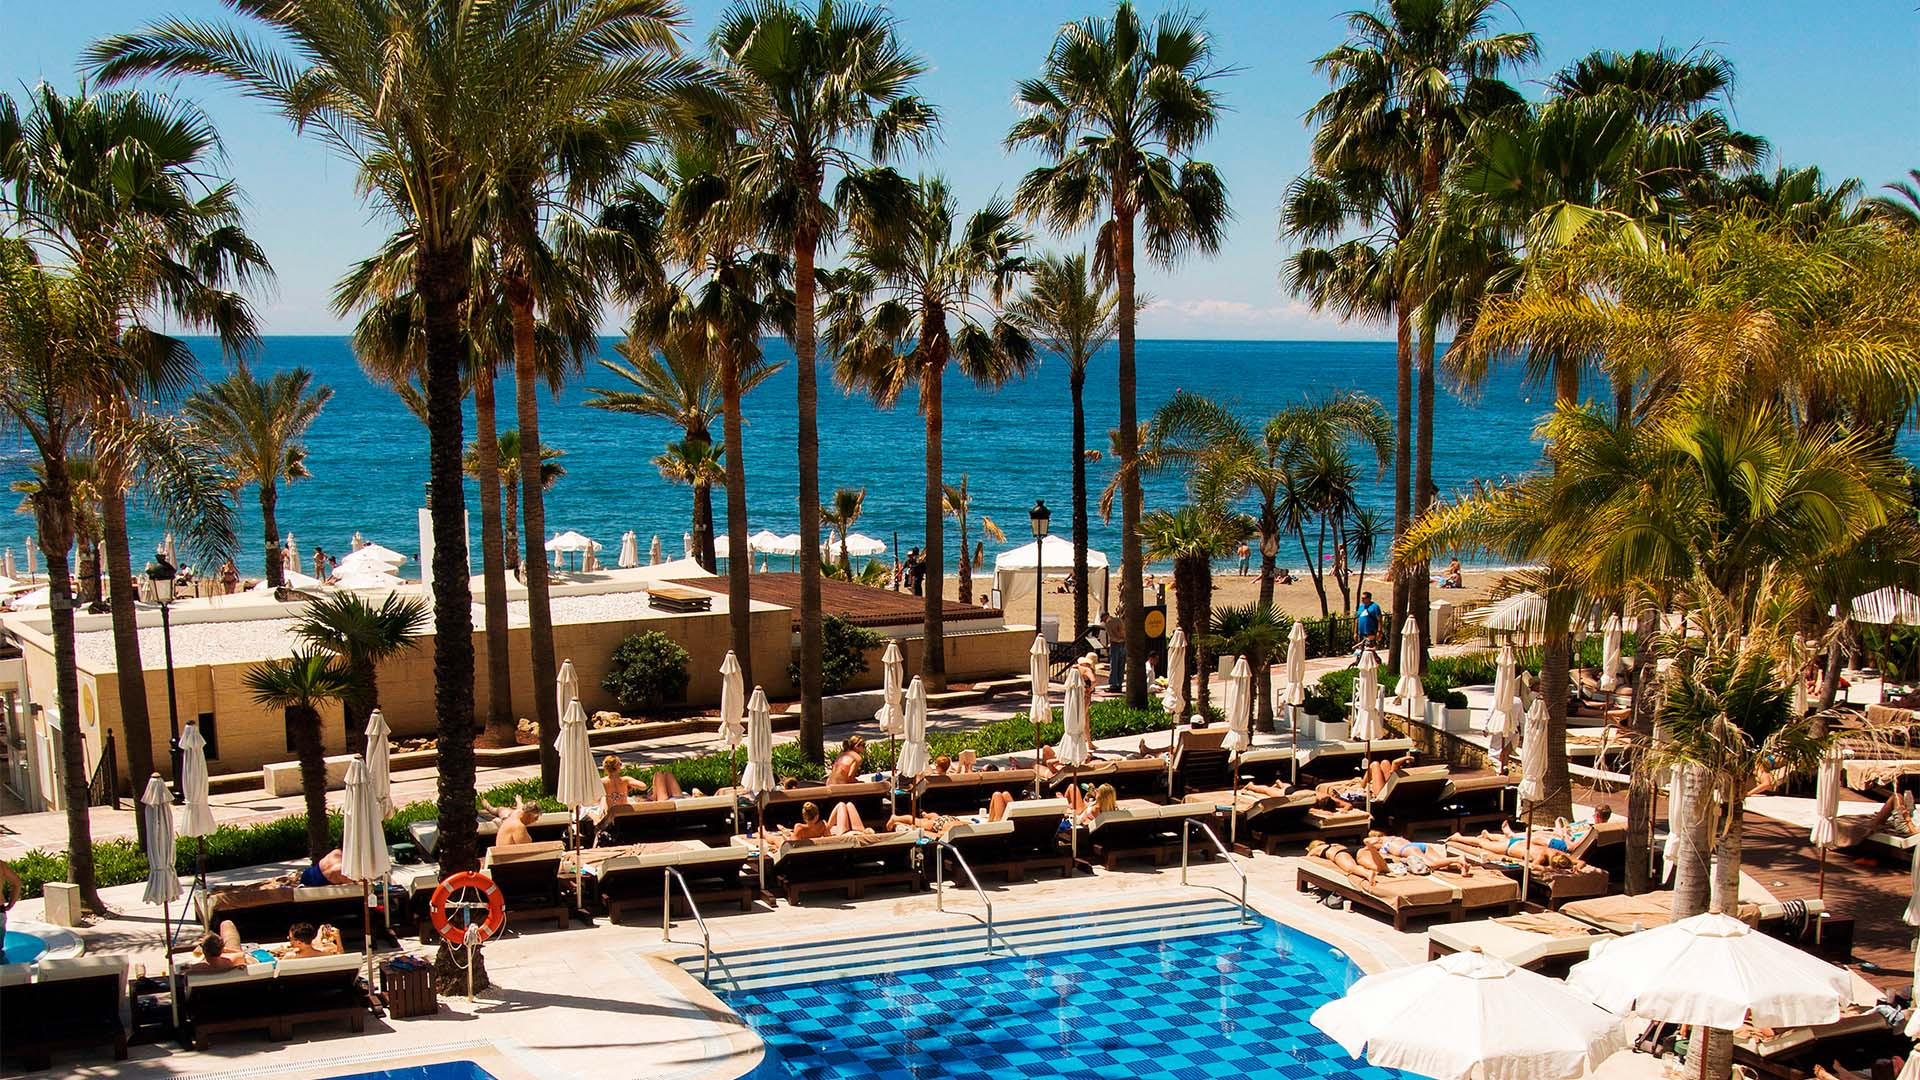 Beach resort in Marbella, Spain